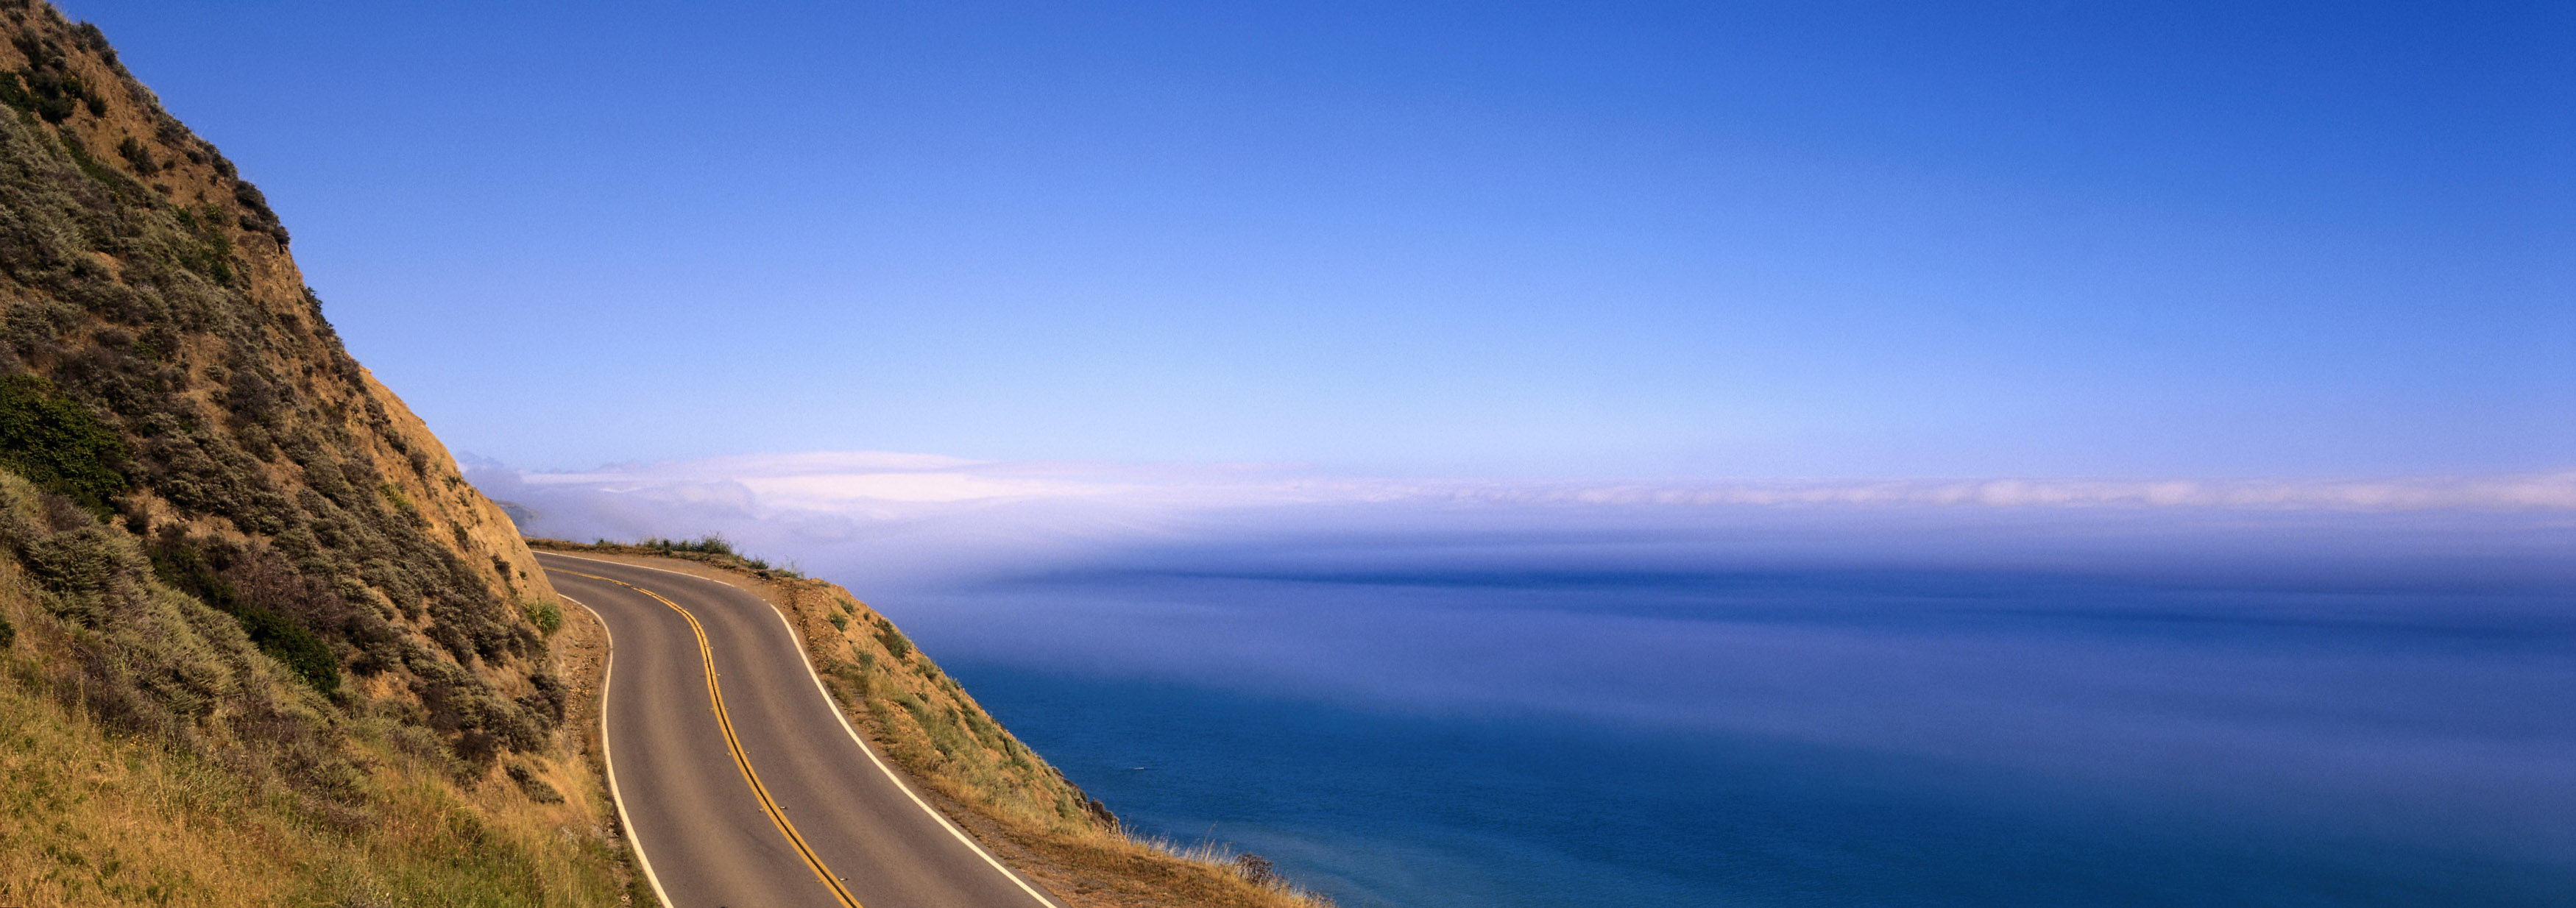 click to free download the wallpaper--nature scenes - The Incredibly Blue Sea and Sky, a Narrow and Straight Road 3500X1234 free wallpaper download